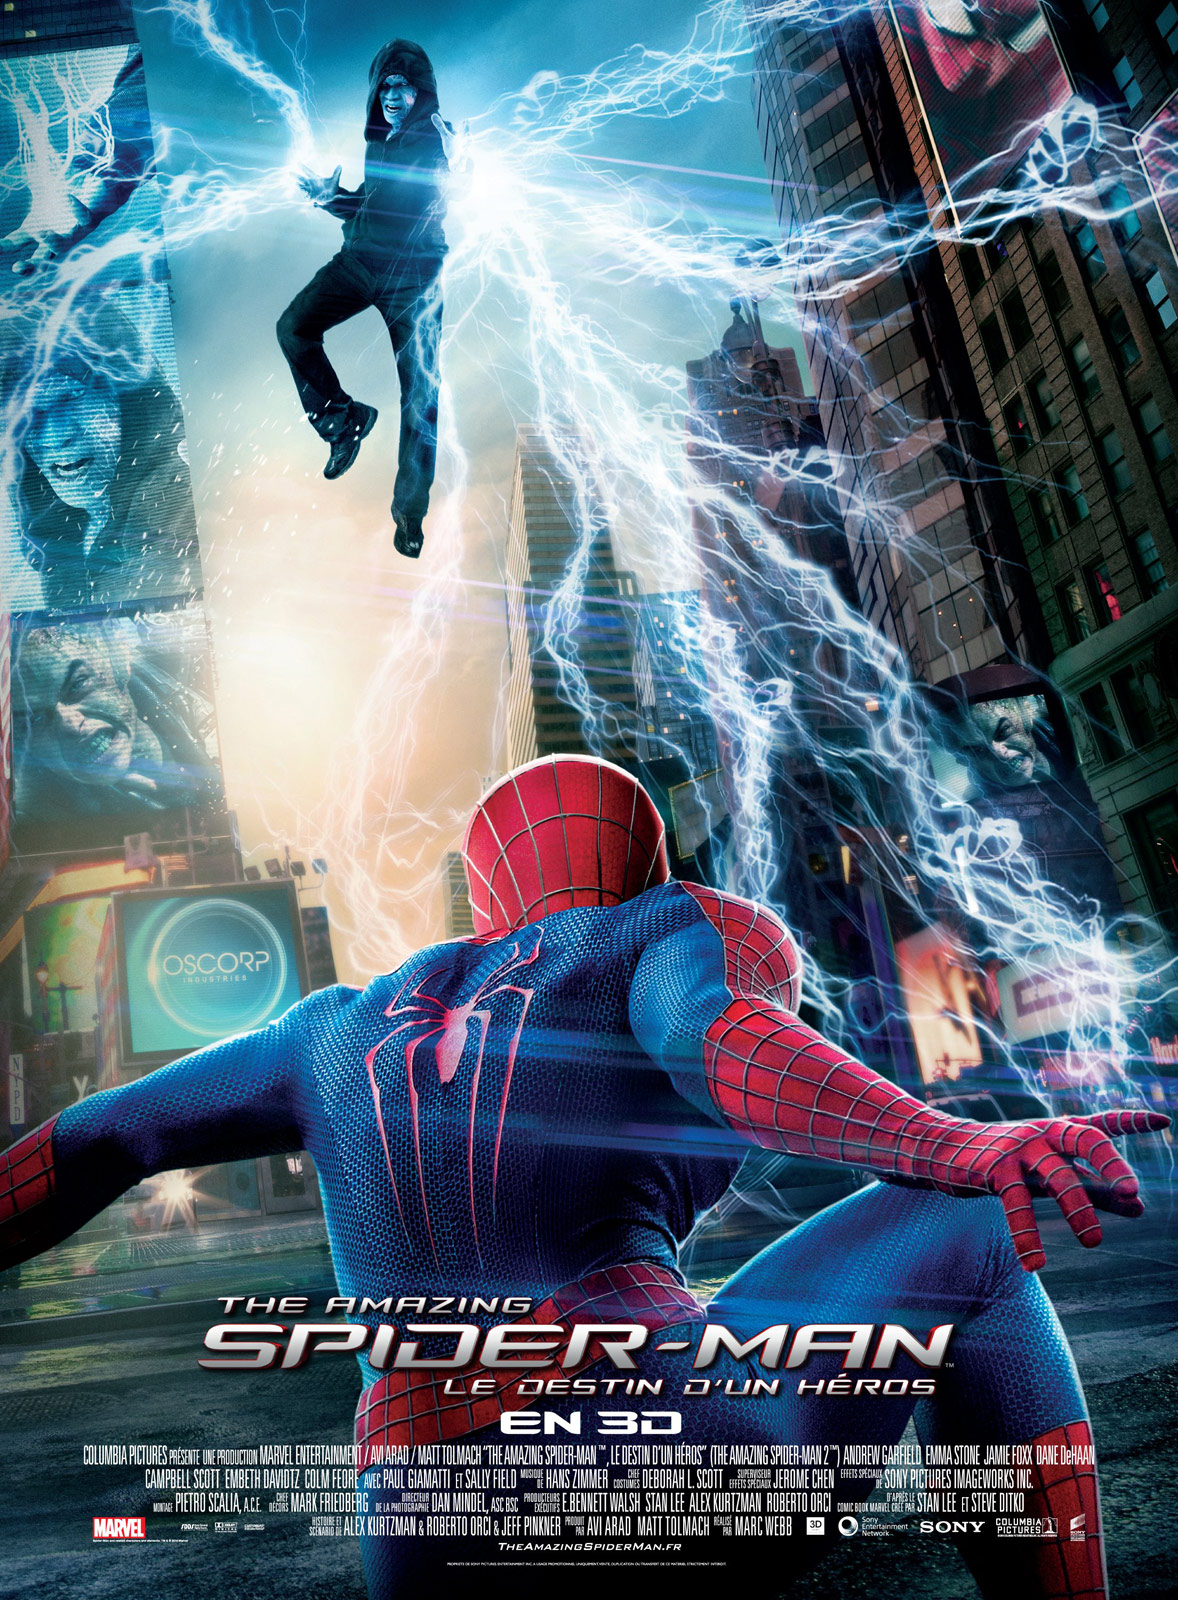 The Amazing Spider-Man : le destin d'un Héros [WEBRIP.MD] dvdrip